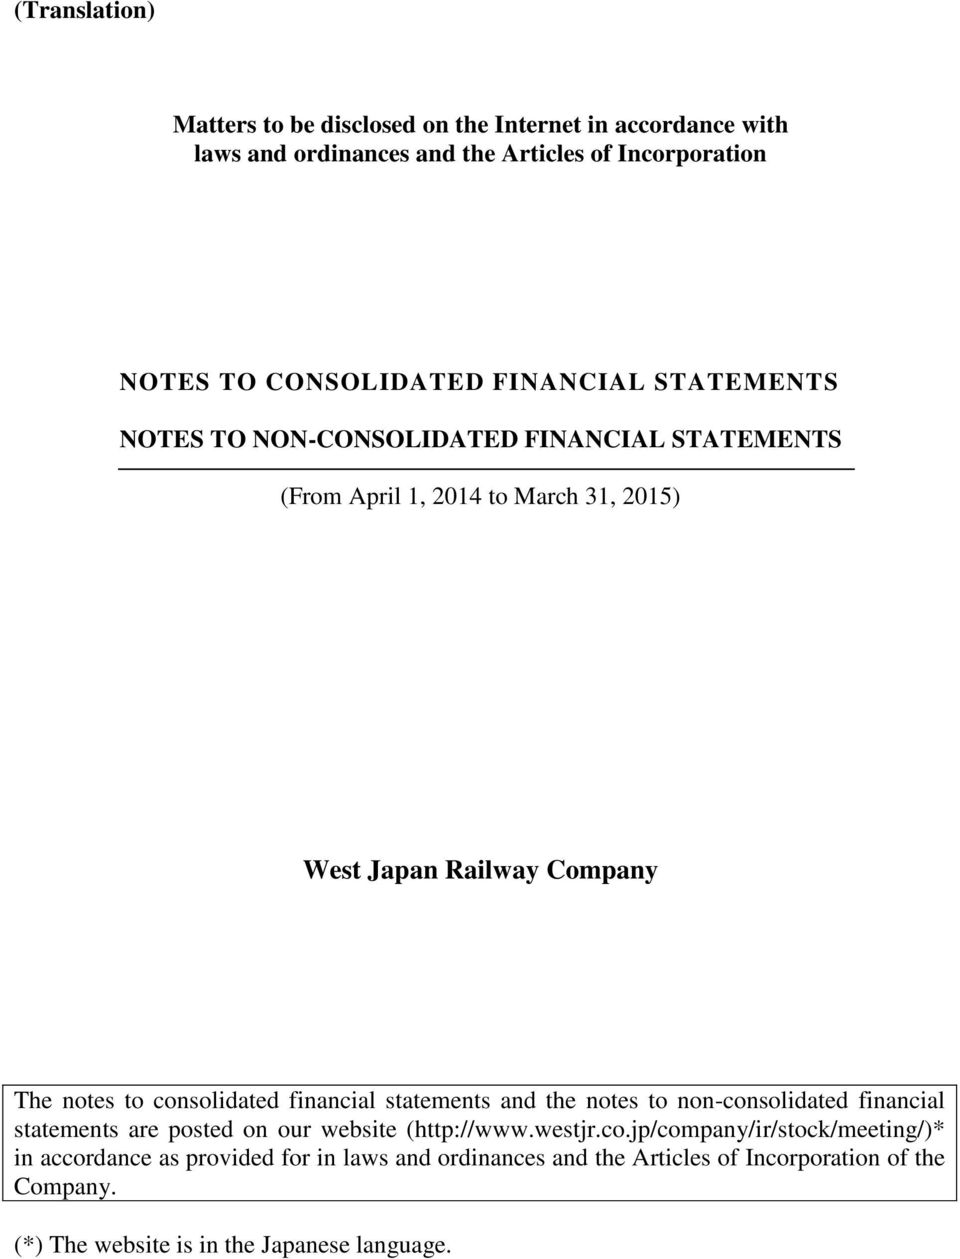 consolidated financial statements and the notes to non-consolidated financial statements are posted on our website (http://www.westjr.co.jp/company/ir/stock/meeting/)* in accordance as provided for in laws and ordinances and the Articles of Incorporation of the Company.